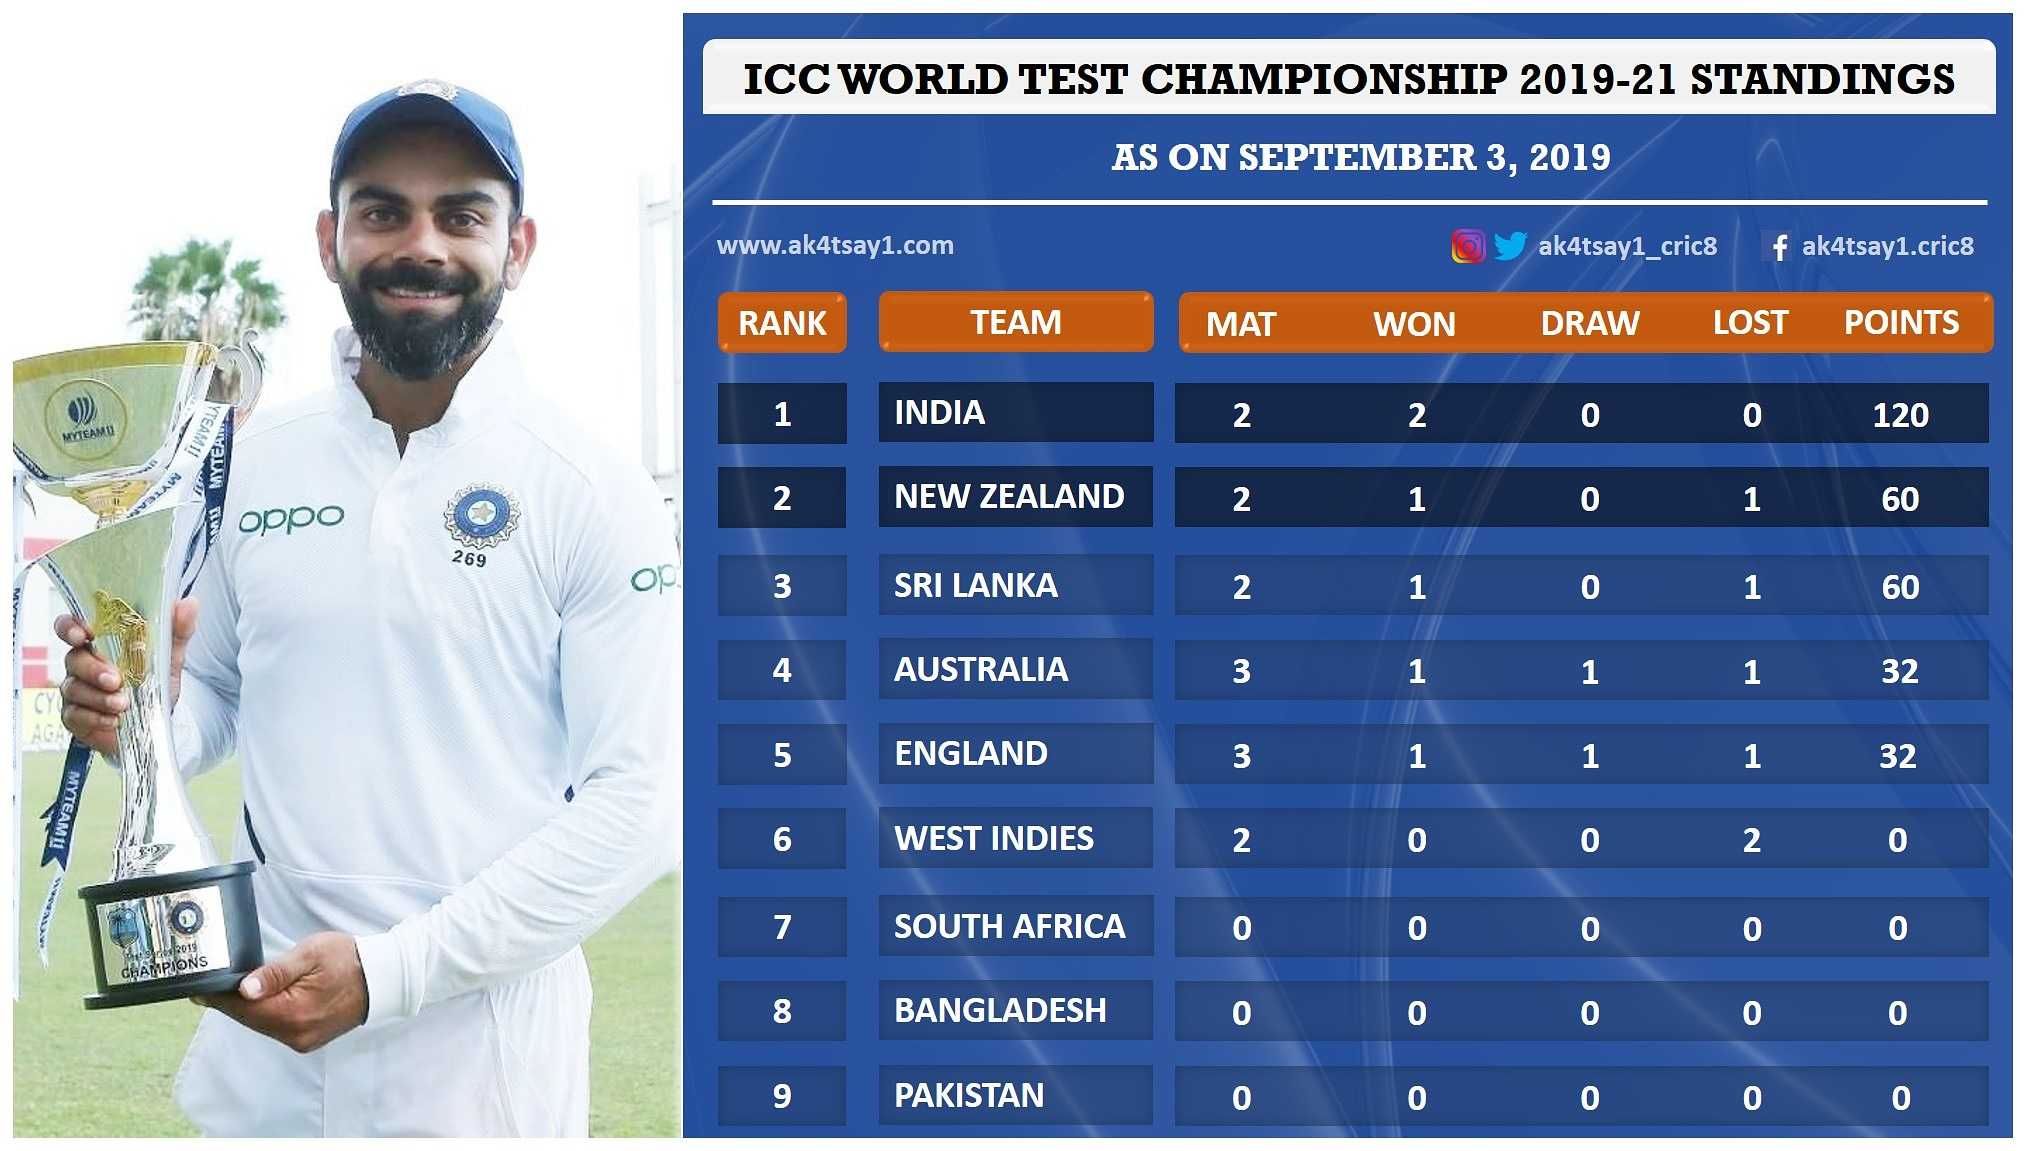 ICC World Test Championship 2019-21 Standings as on September 3, 2019